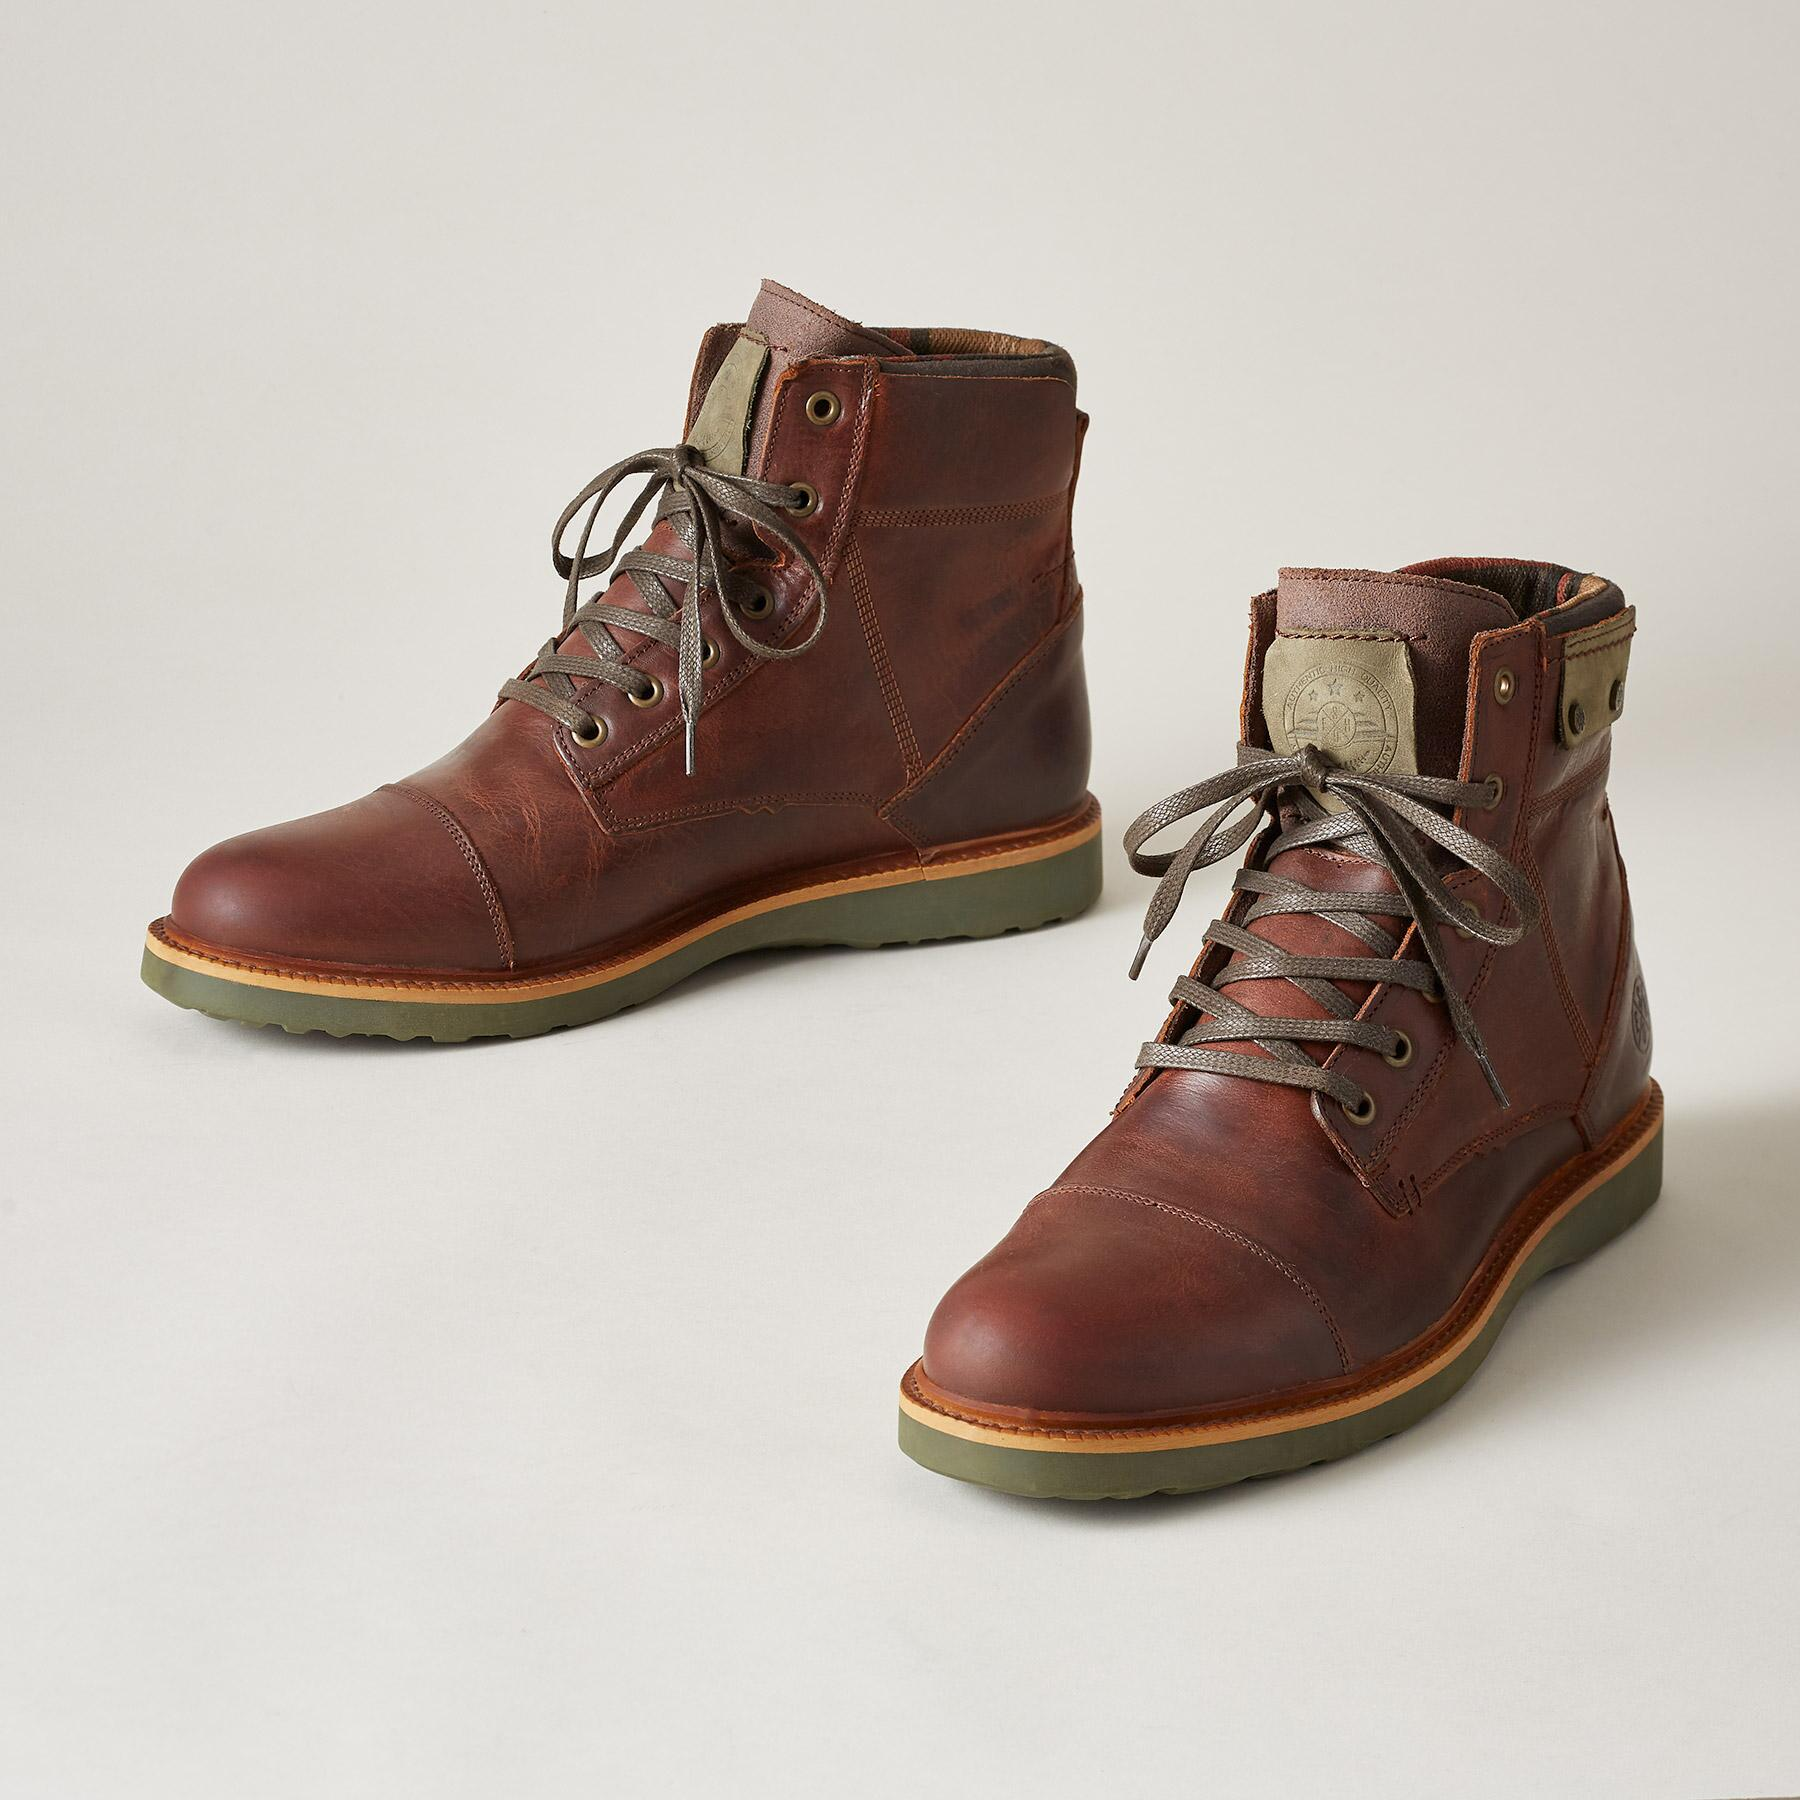 8e2219e1cfd6 WARWICK BOOTS RED BROWN